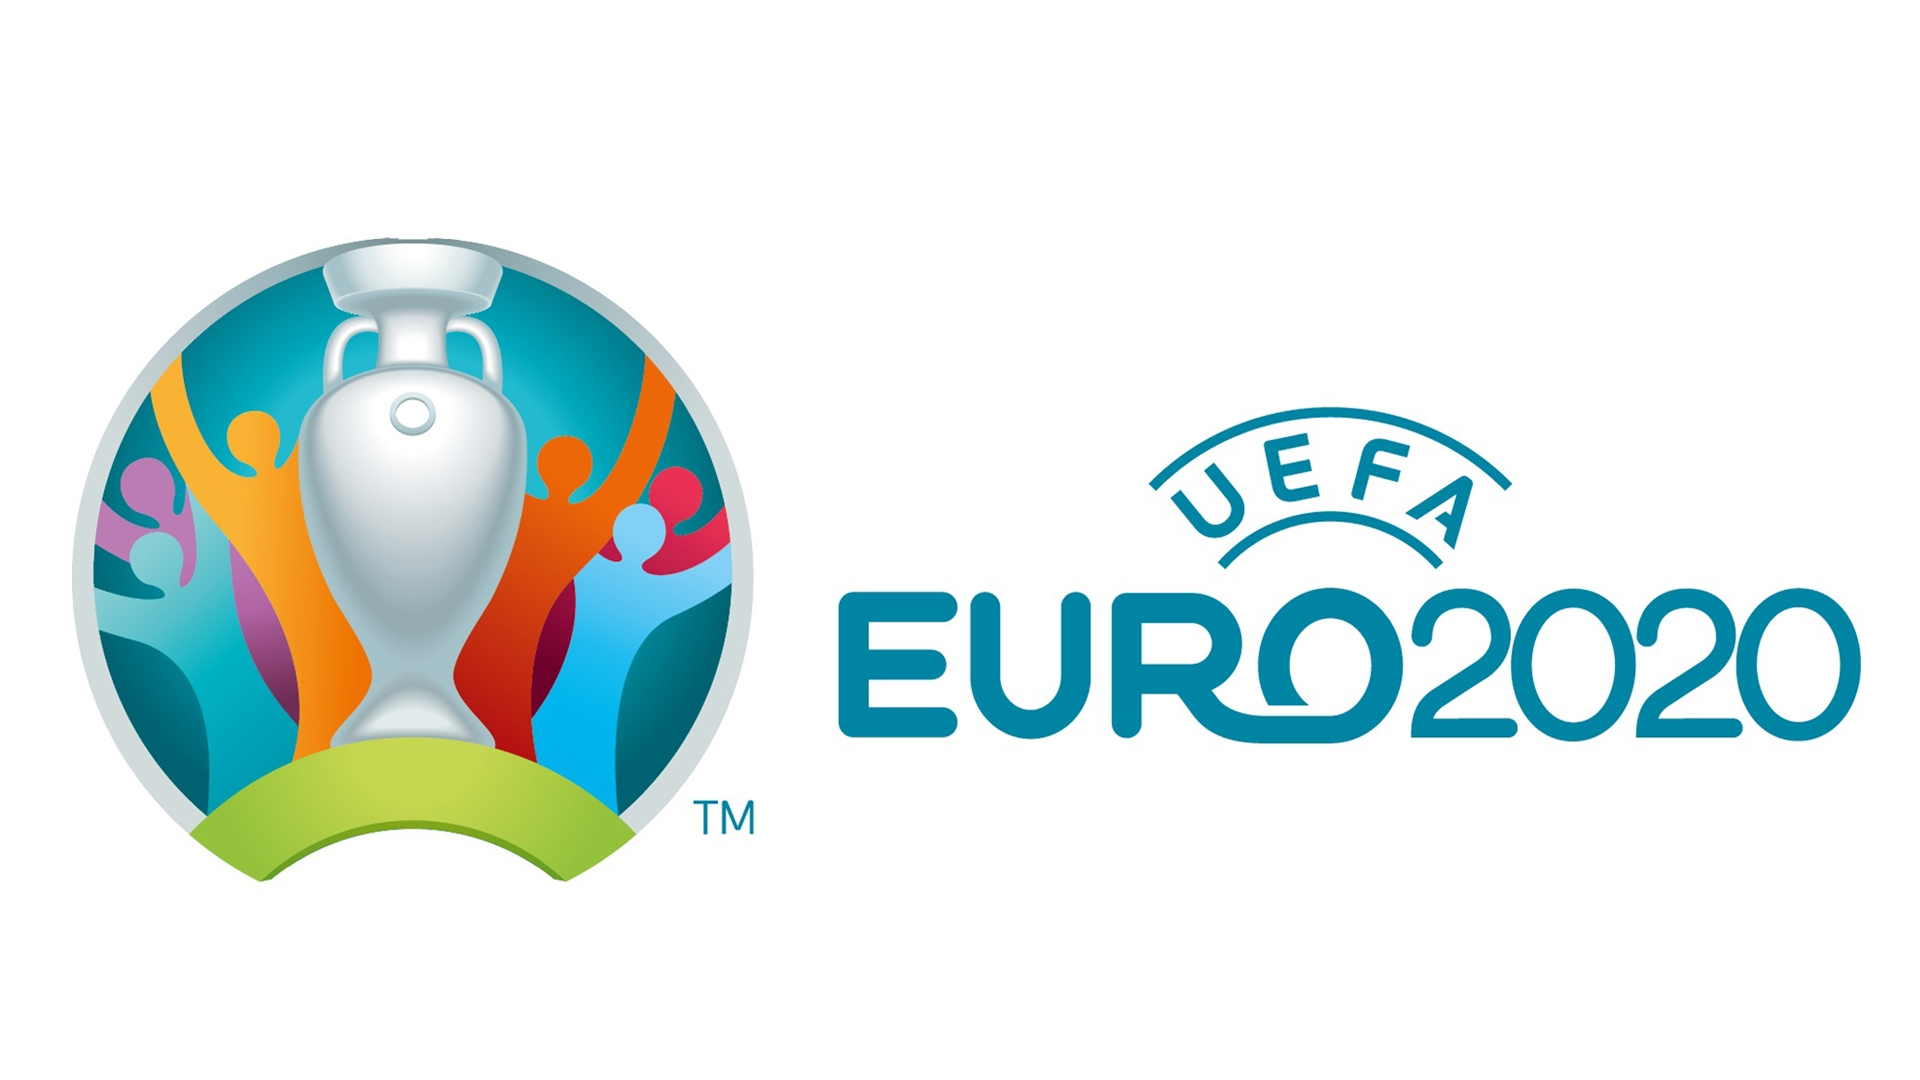 Mediaset obtains the reproduction rights for UEFA Euro 2020